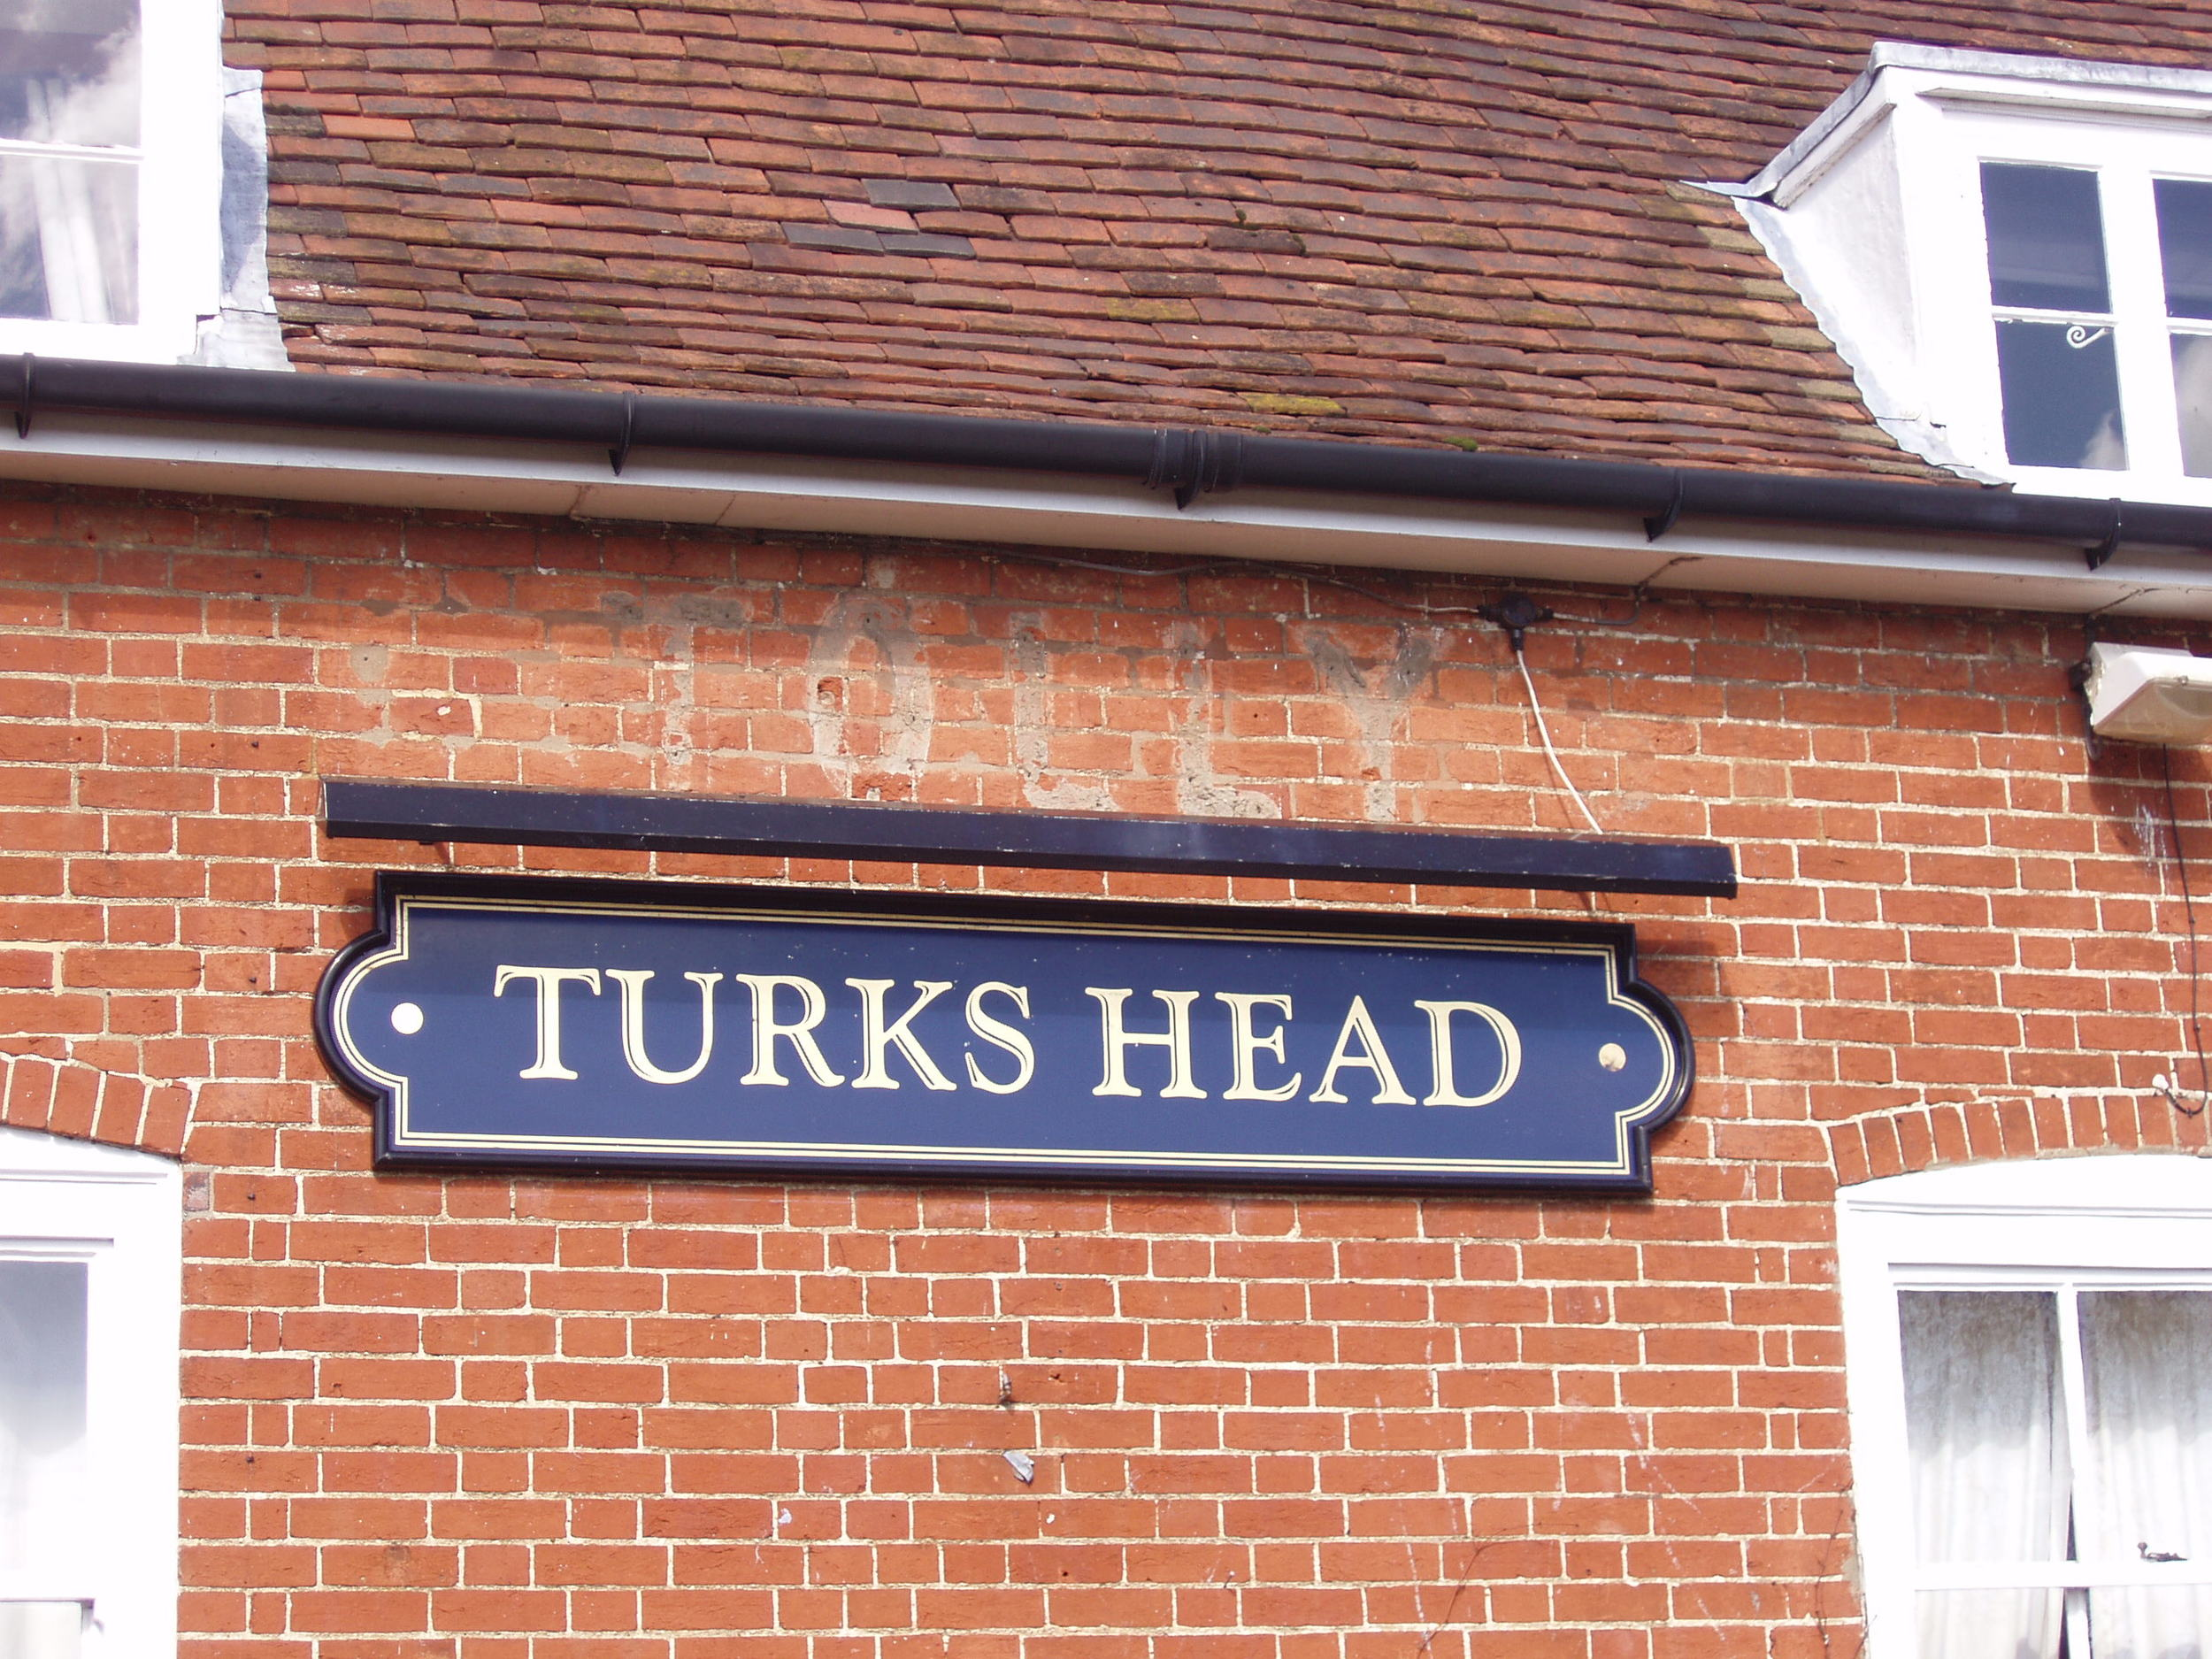 turkshead